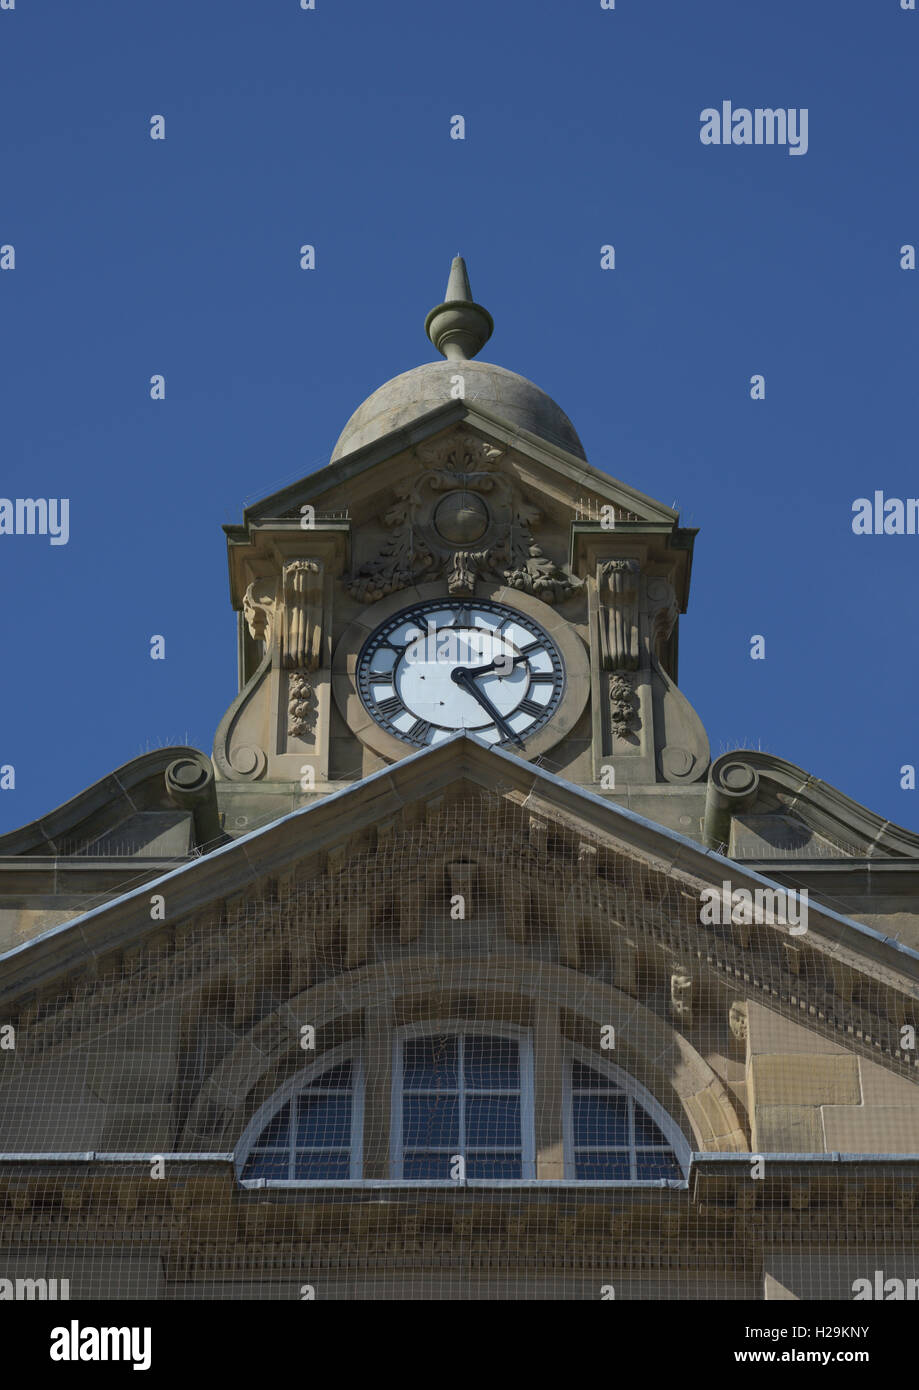 Hsbc bank clock turret against blue cloudless sky - Stock Image